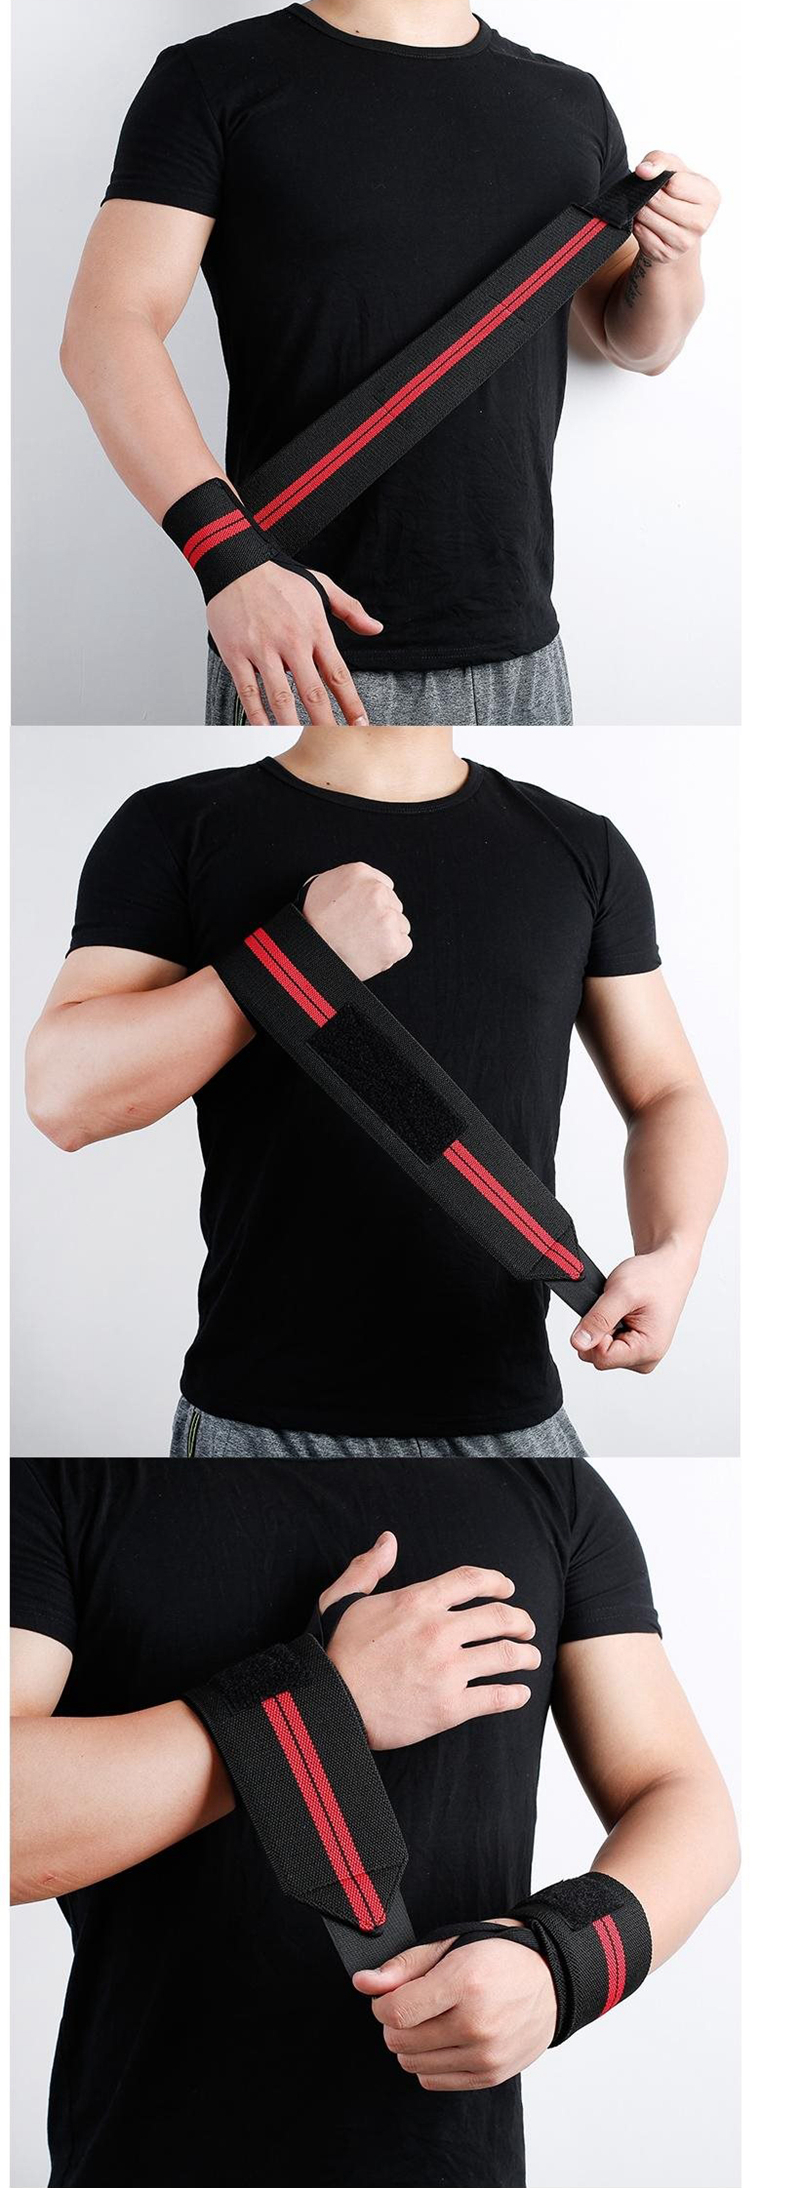 Weight Lifting Strap Fitness Gym Sport Wrist Wrap Bandage Hand Support Wristband (5)